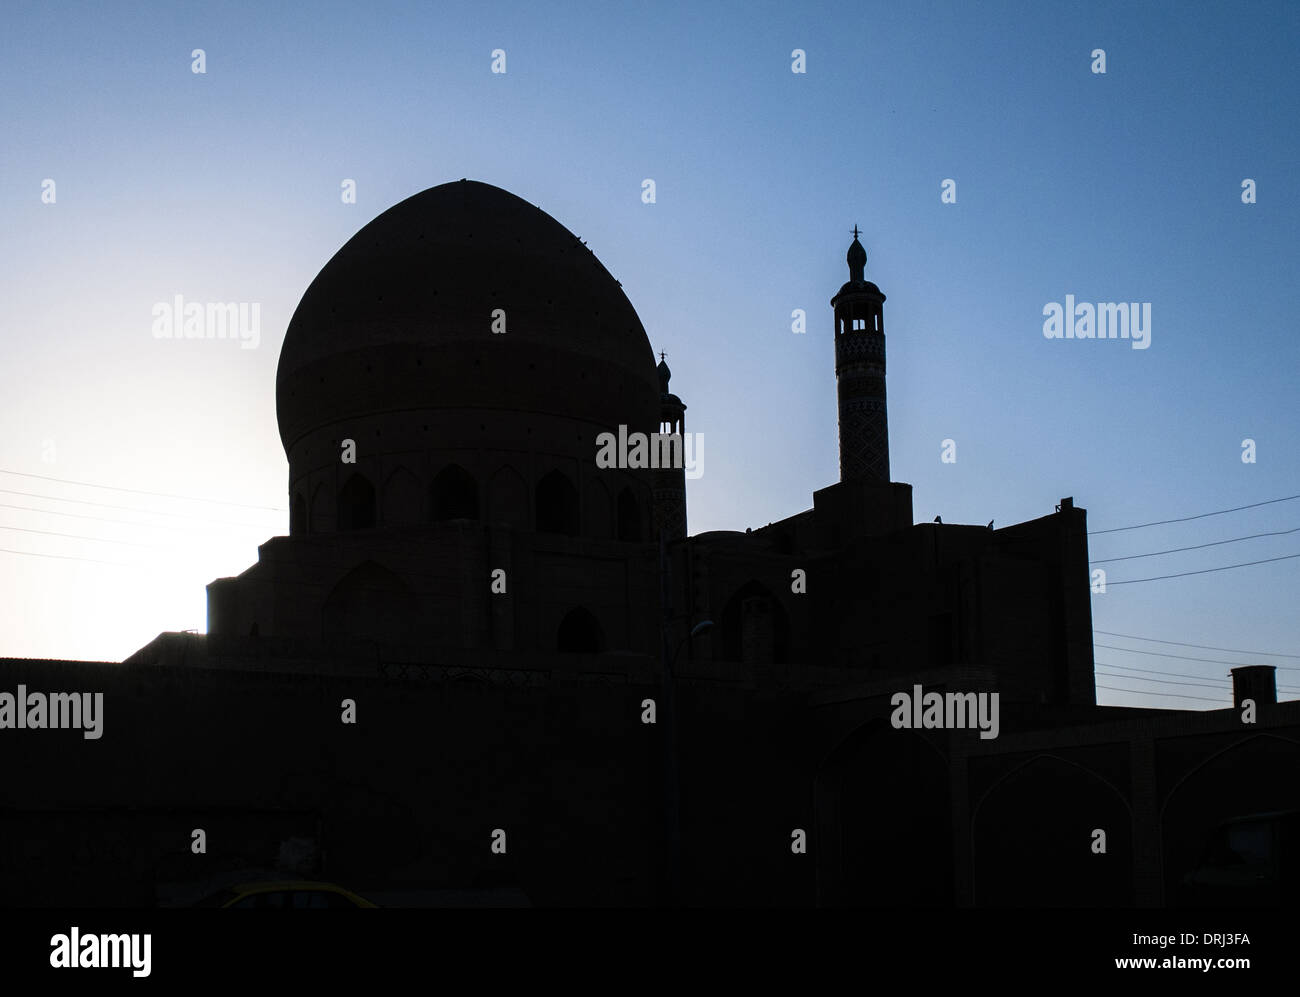 Silhouette of mosque in Kashan, Ostan-e Esfahan, Iran - Stock Image